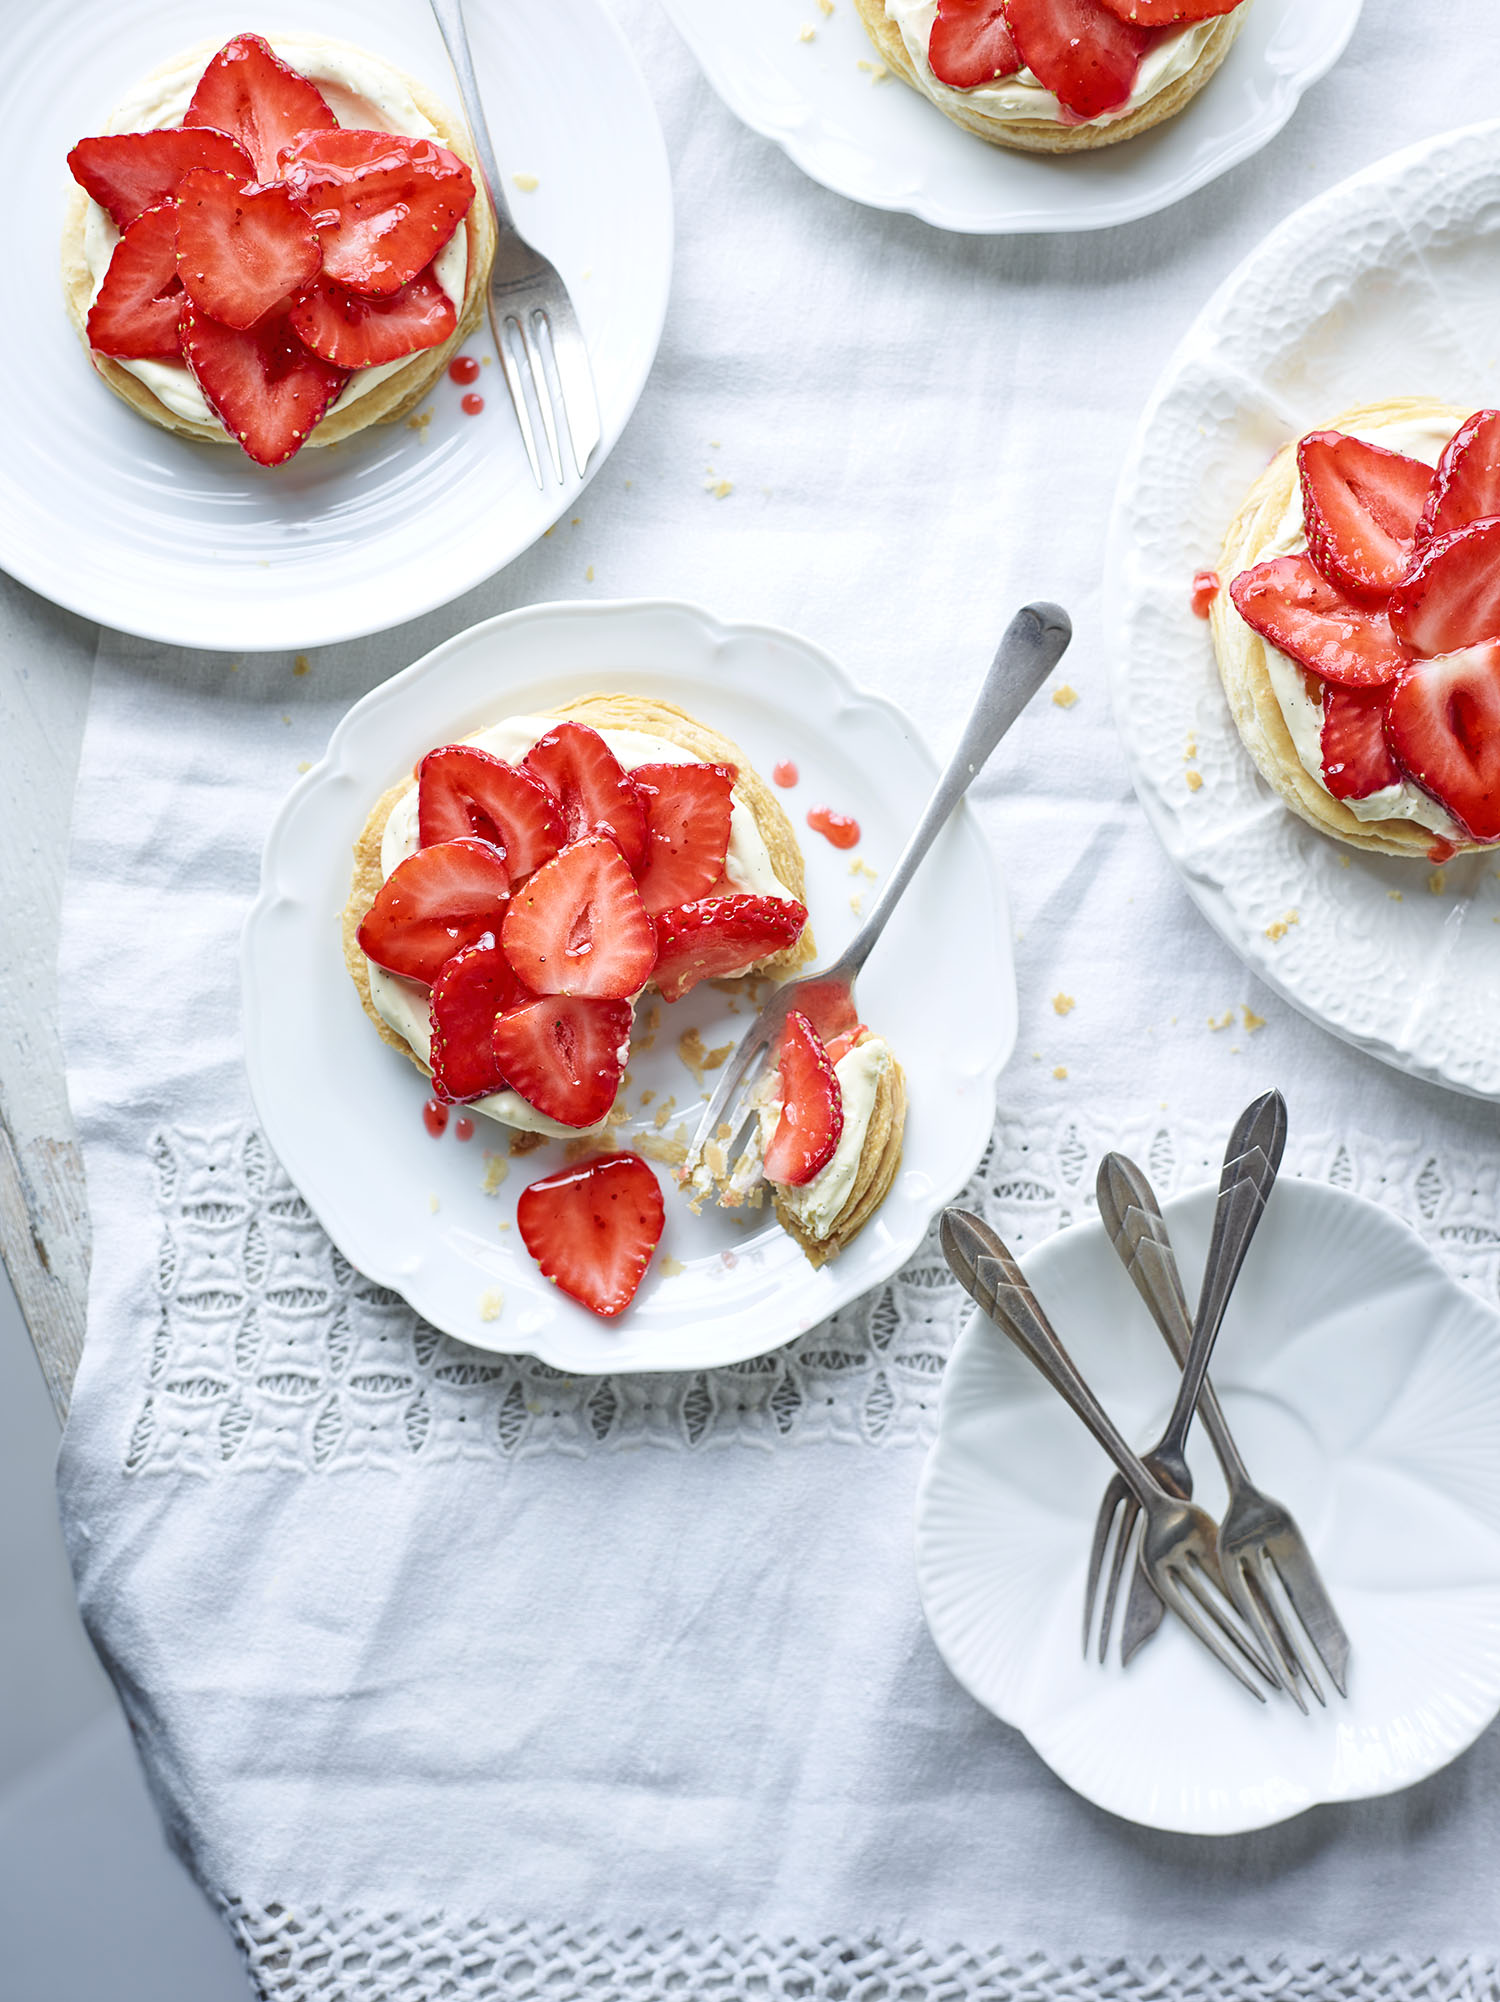 Cheat's Strawberry Tarts Photograph Maja Smend Prop Styling Olivia Wardle Recipe Madeline Burkitt